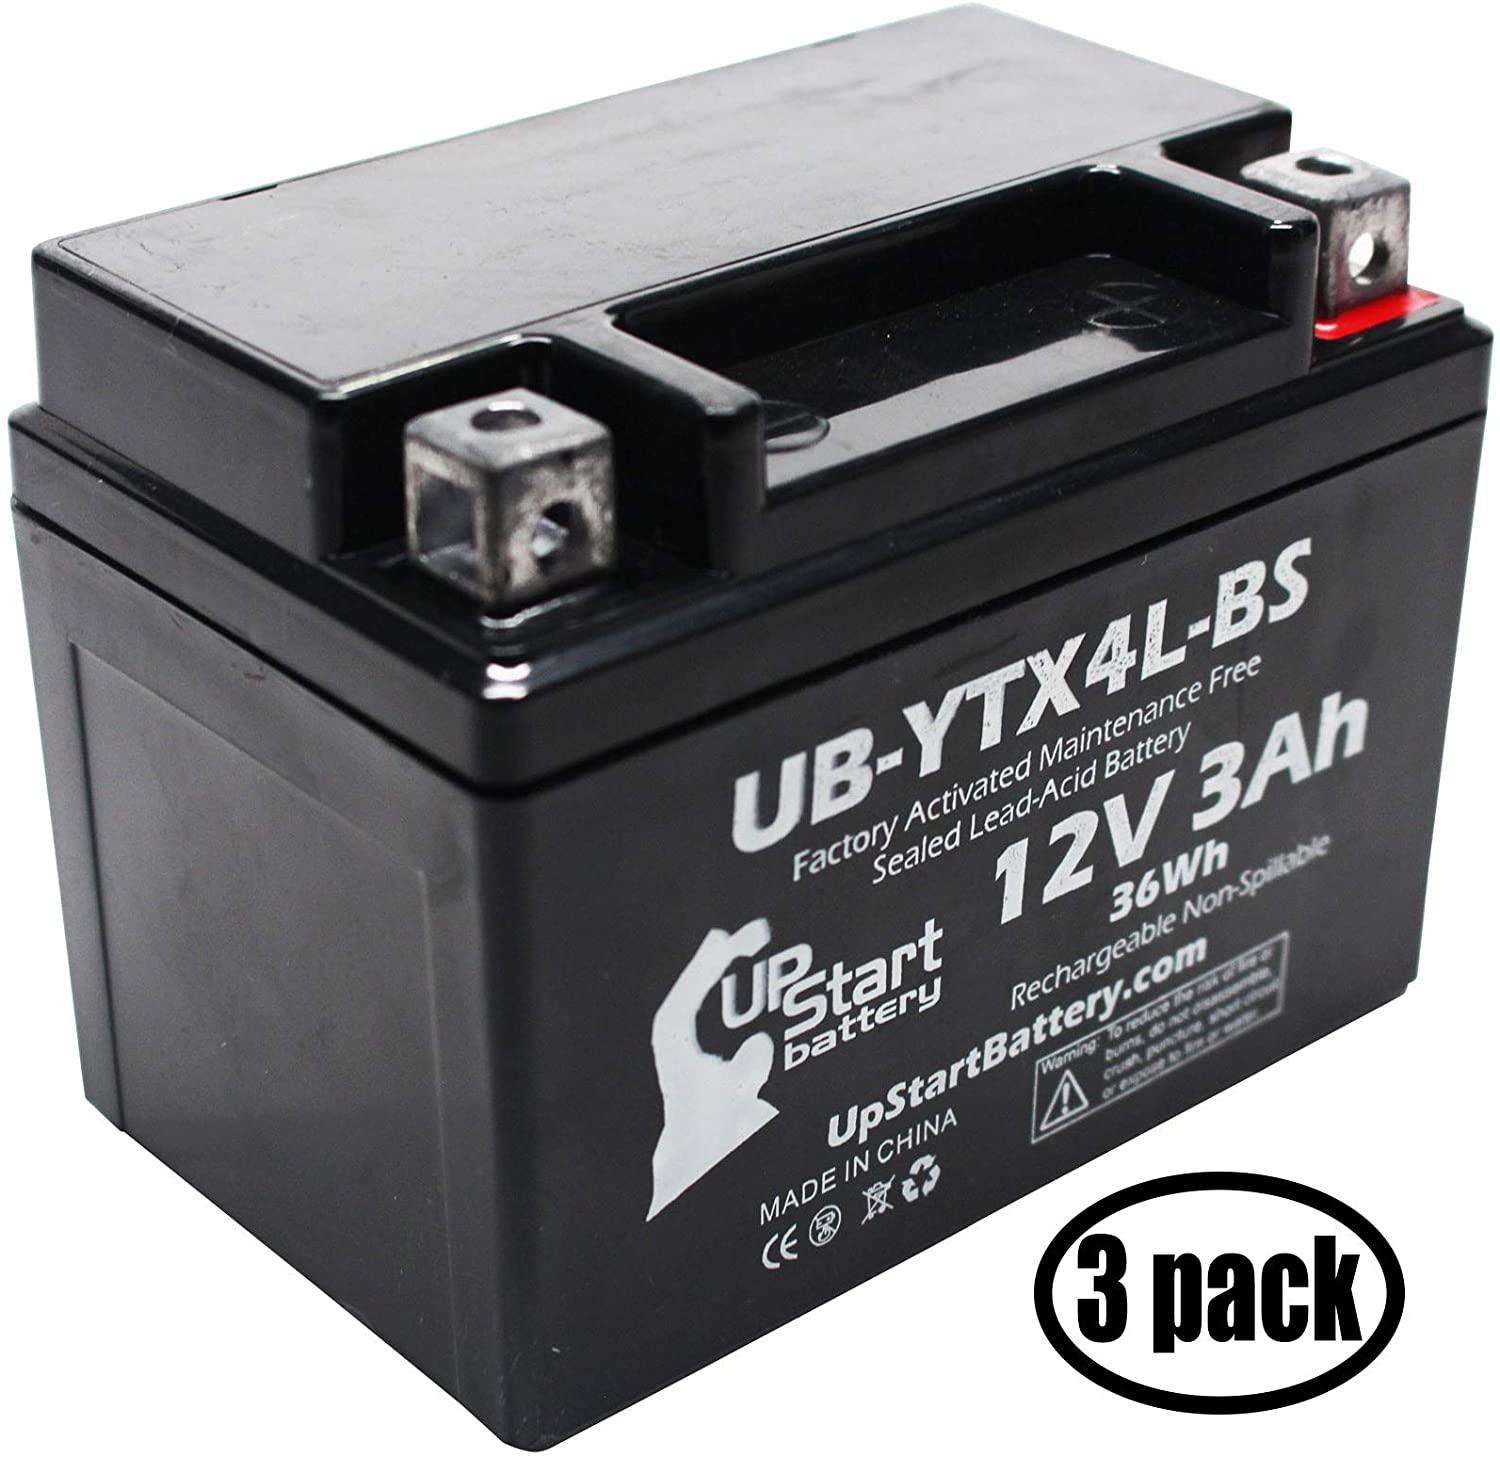 3 Pack - YTX4L-BS Battery Replacement (3Ah, 12v, Sealed) Factory Activated, Maintenance Free Battery Compatible with - 1990 Suzuki DR350S, 1990 Suzuki DR250S, 1993 Suzuki DR350S, 1991 Suzuki DR350S